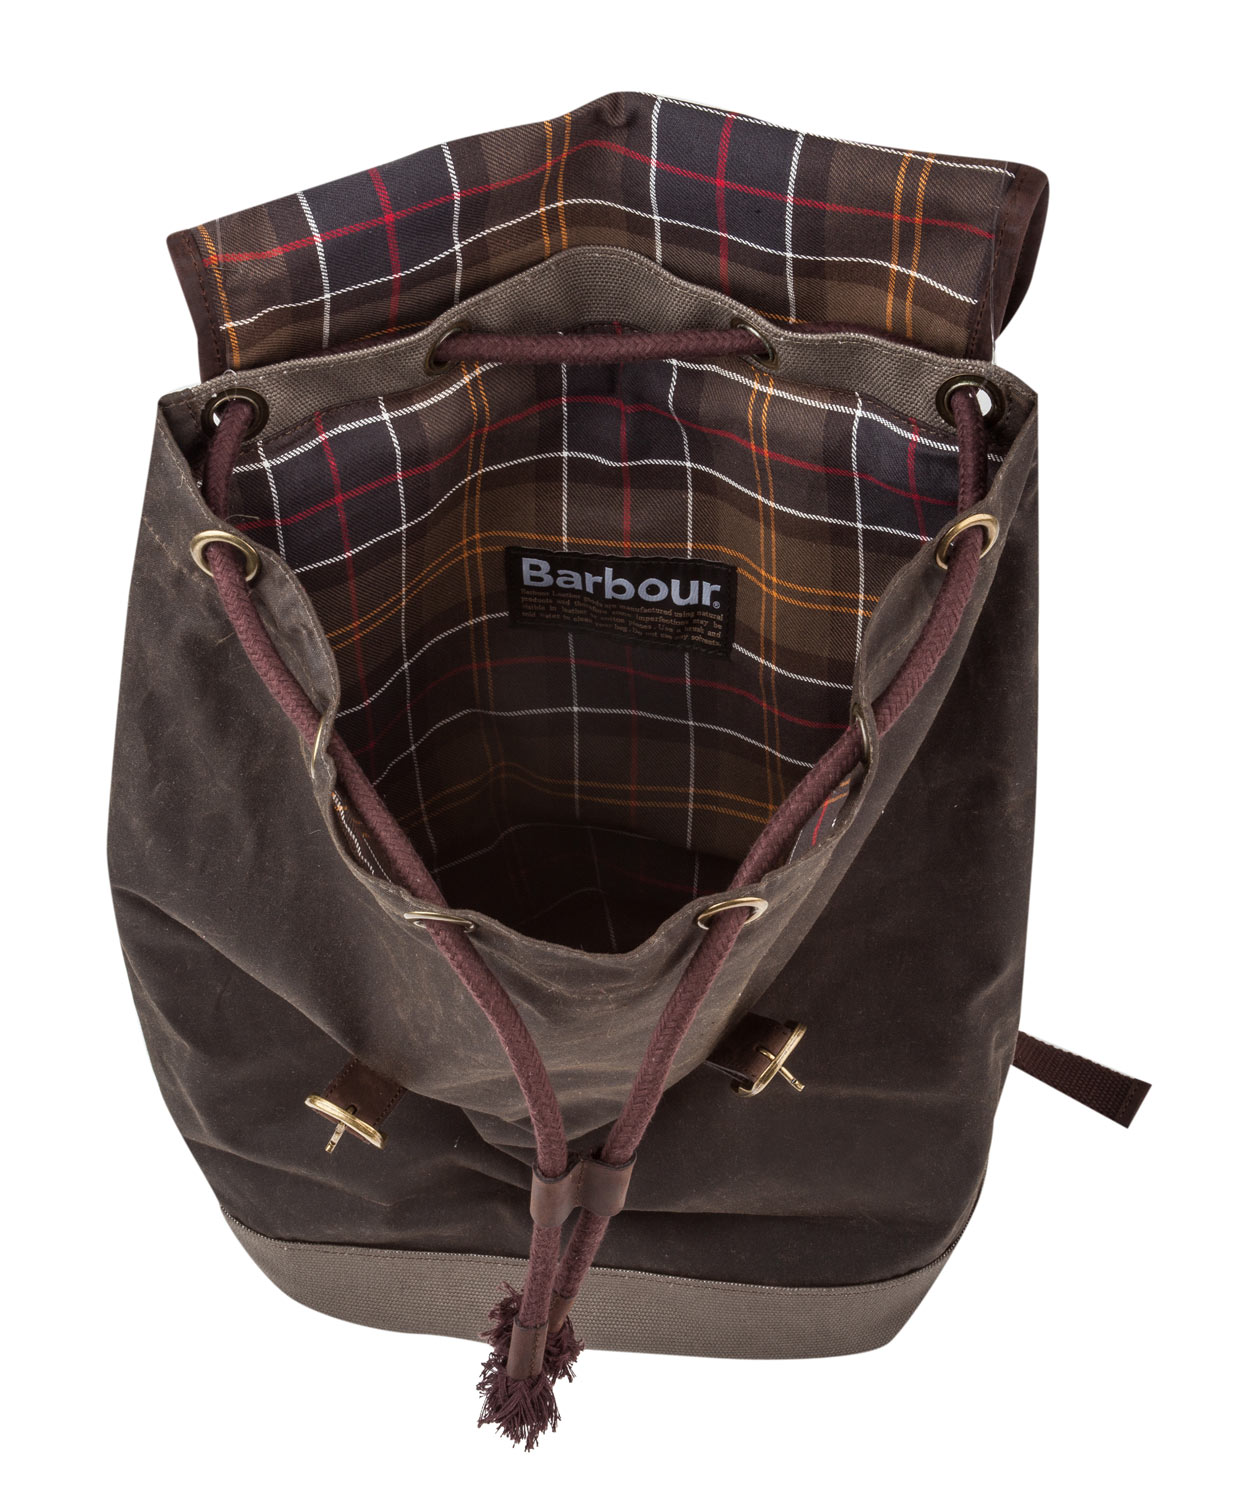 Barbour Beeswax City Backpack In Green For Men Lyst